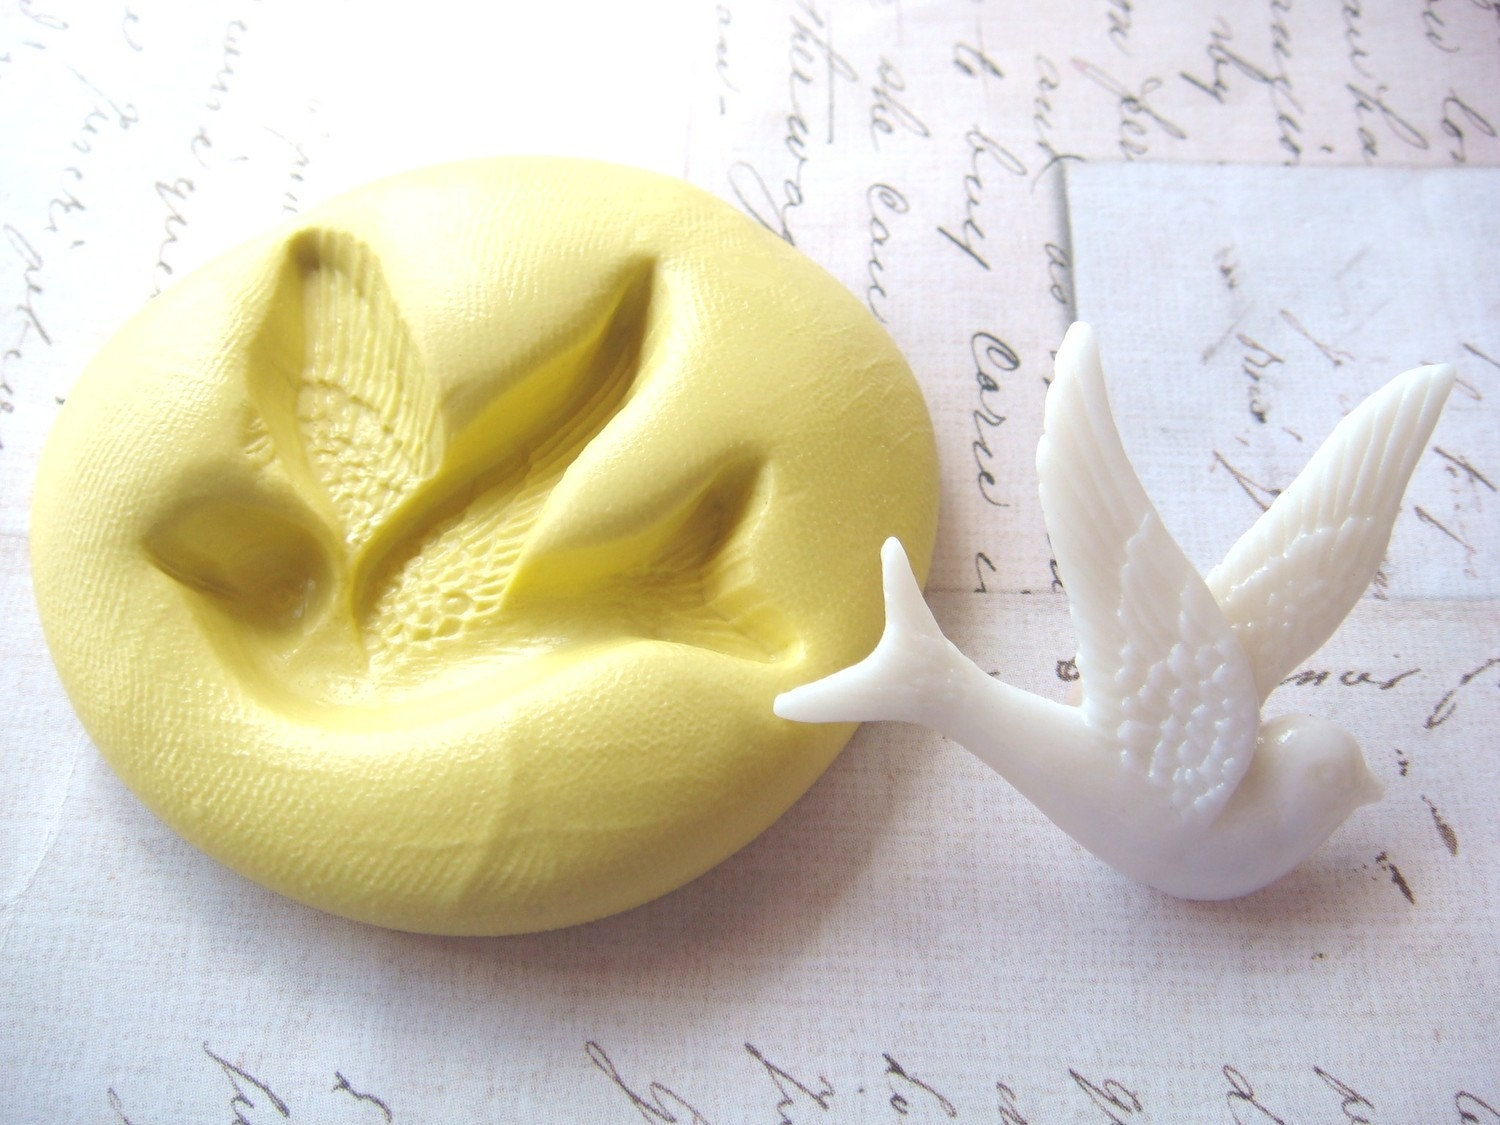 BLUEBIRD -  Flexible Silicone Mold - Push Mold, Polymer Clay Mold, Resin Mold, Pmc Mold, Supplies, Crafting Mold - Molds